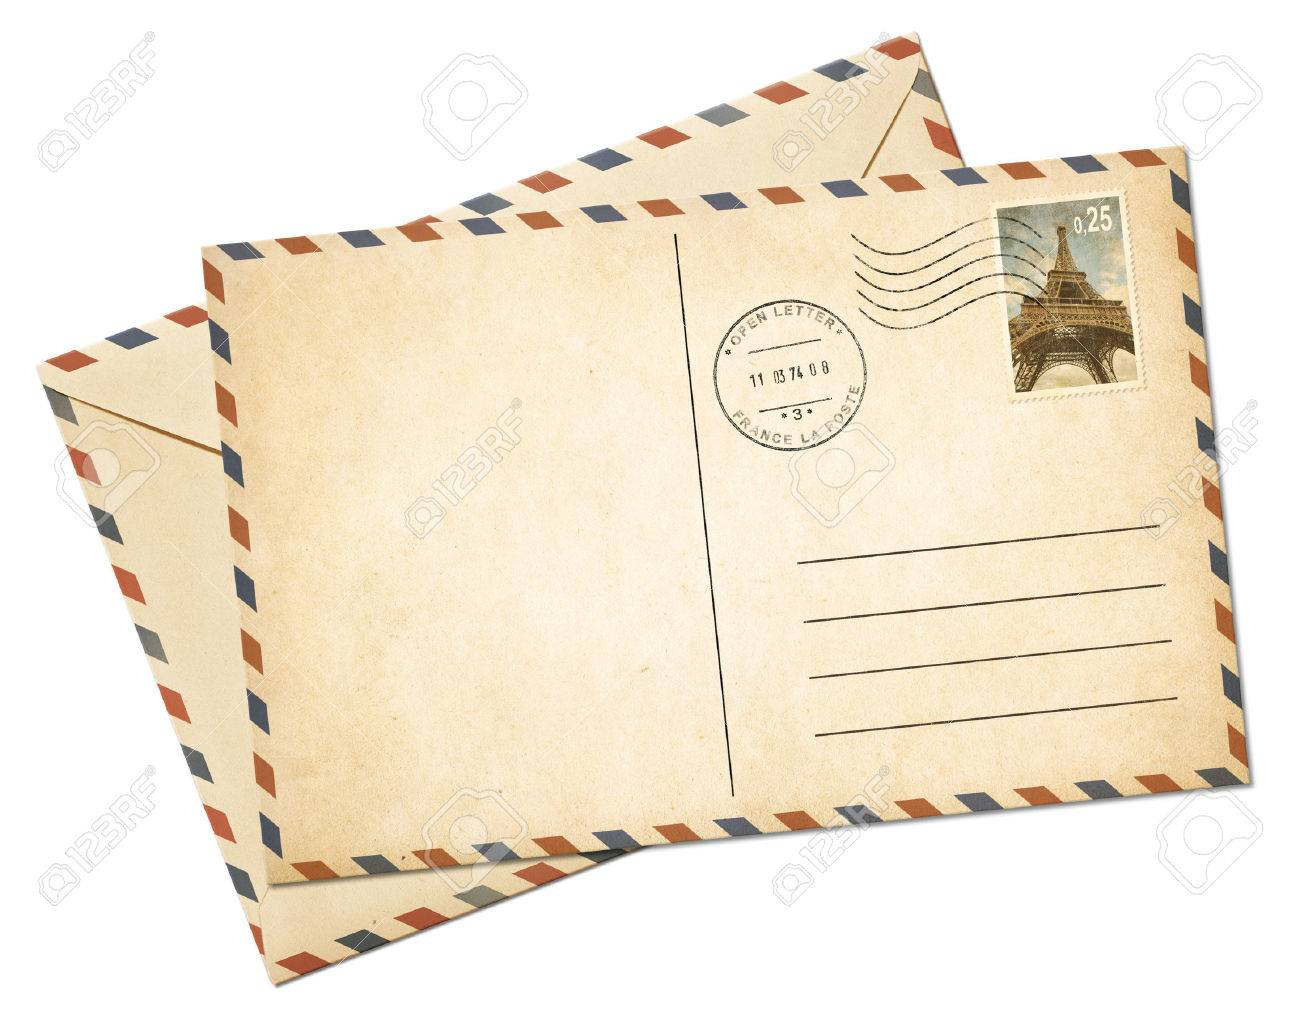 Blank par avion postcard template and envelope isolated on white - 47431854